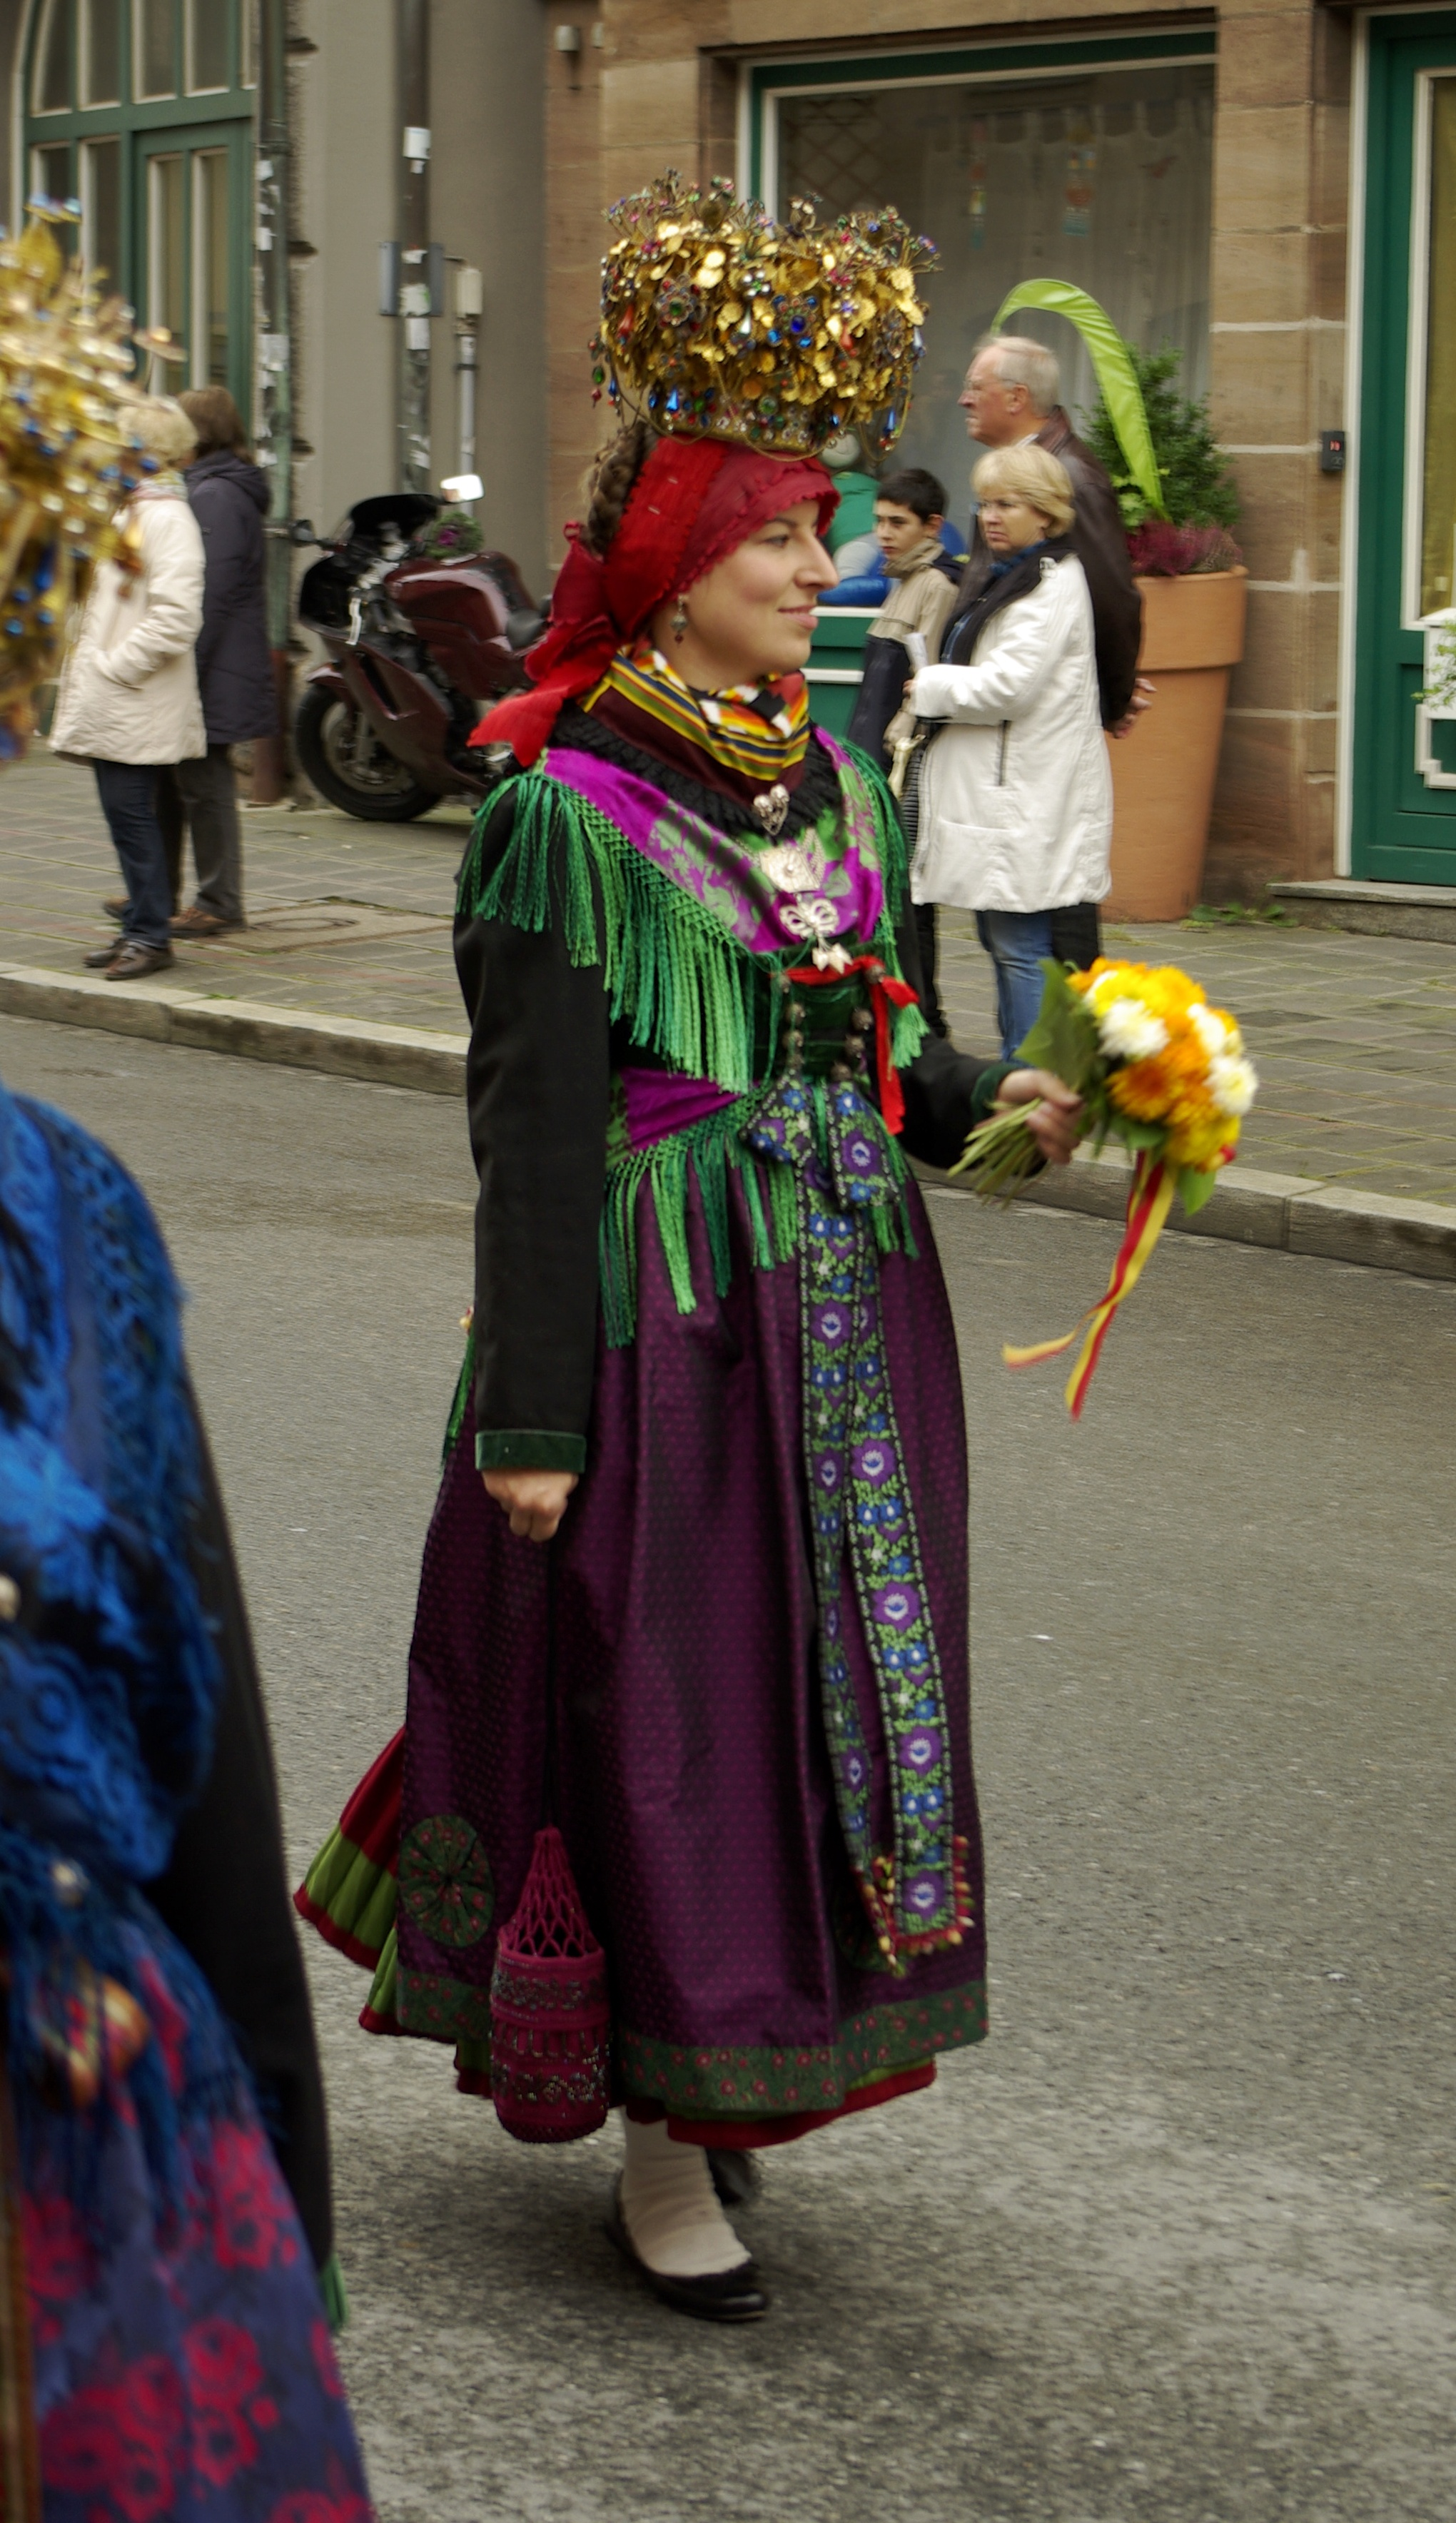 Forchheim Tracht or Folk clothing